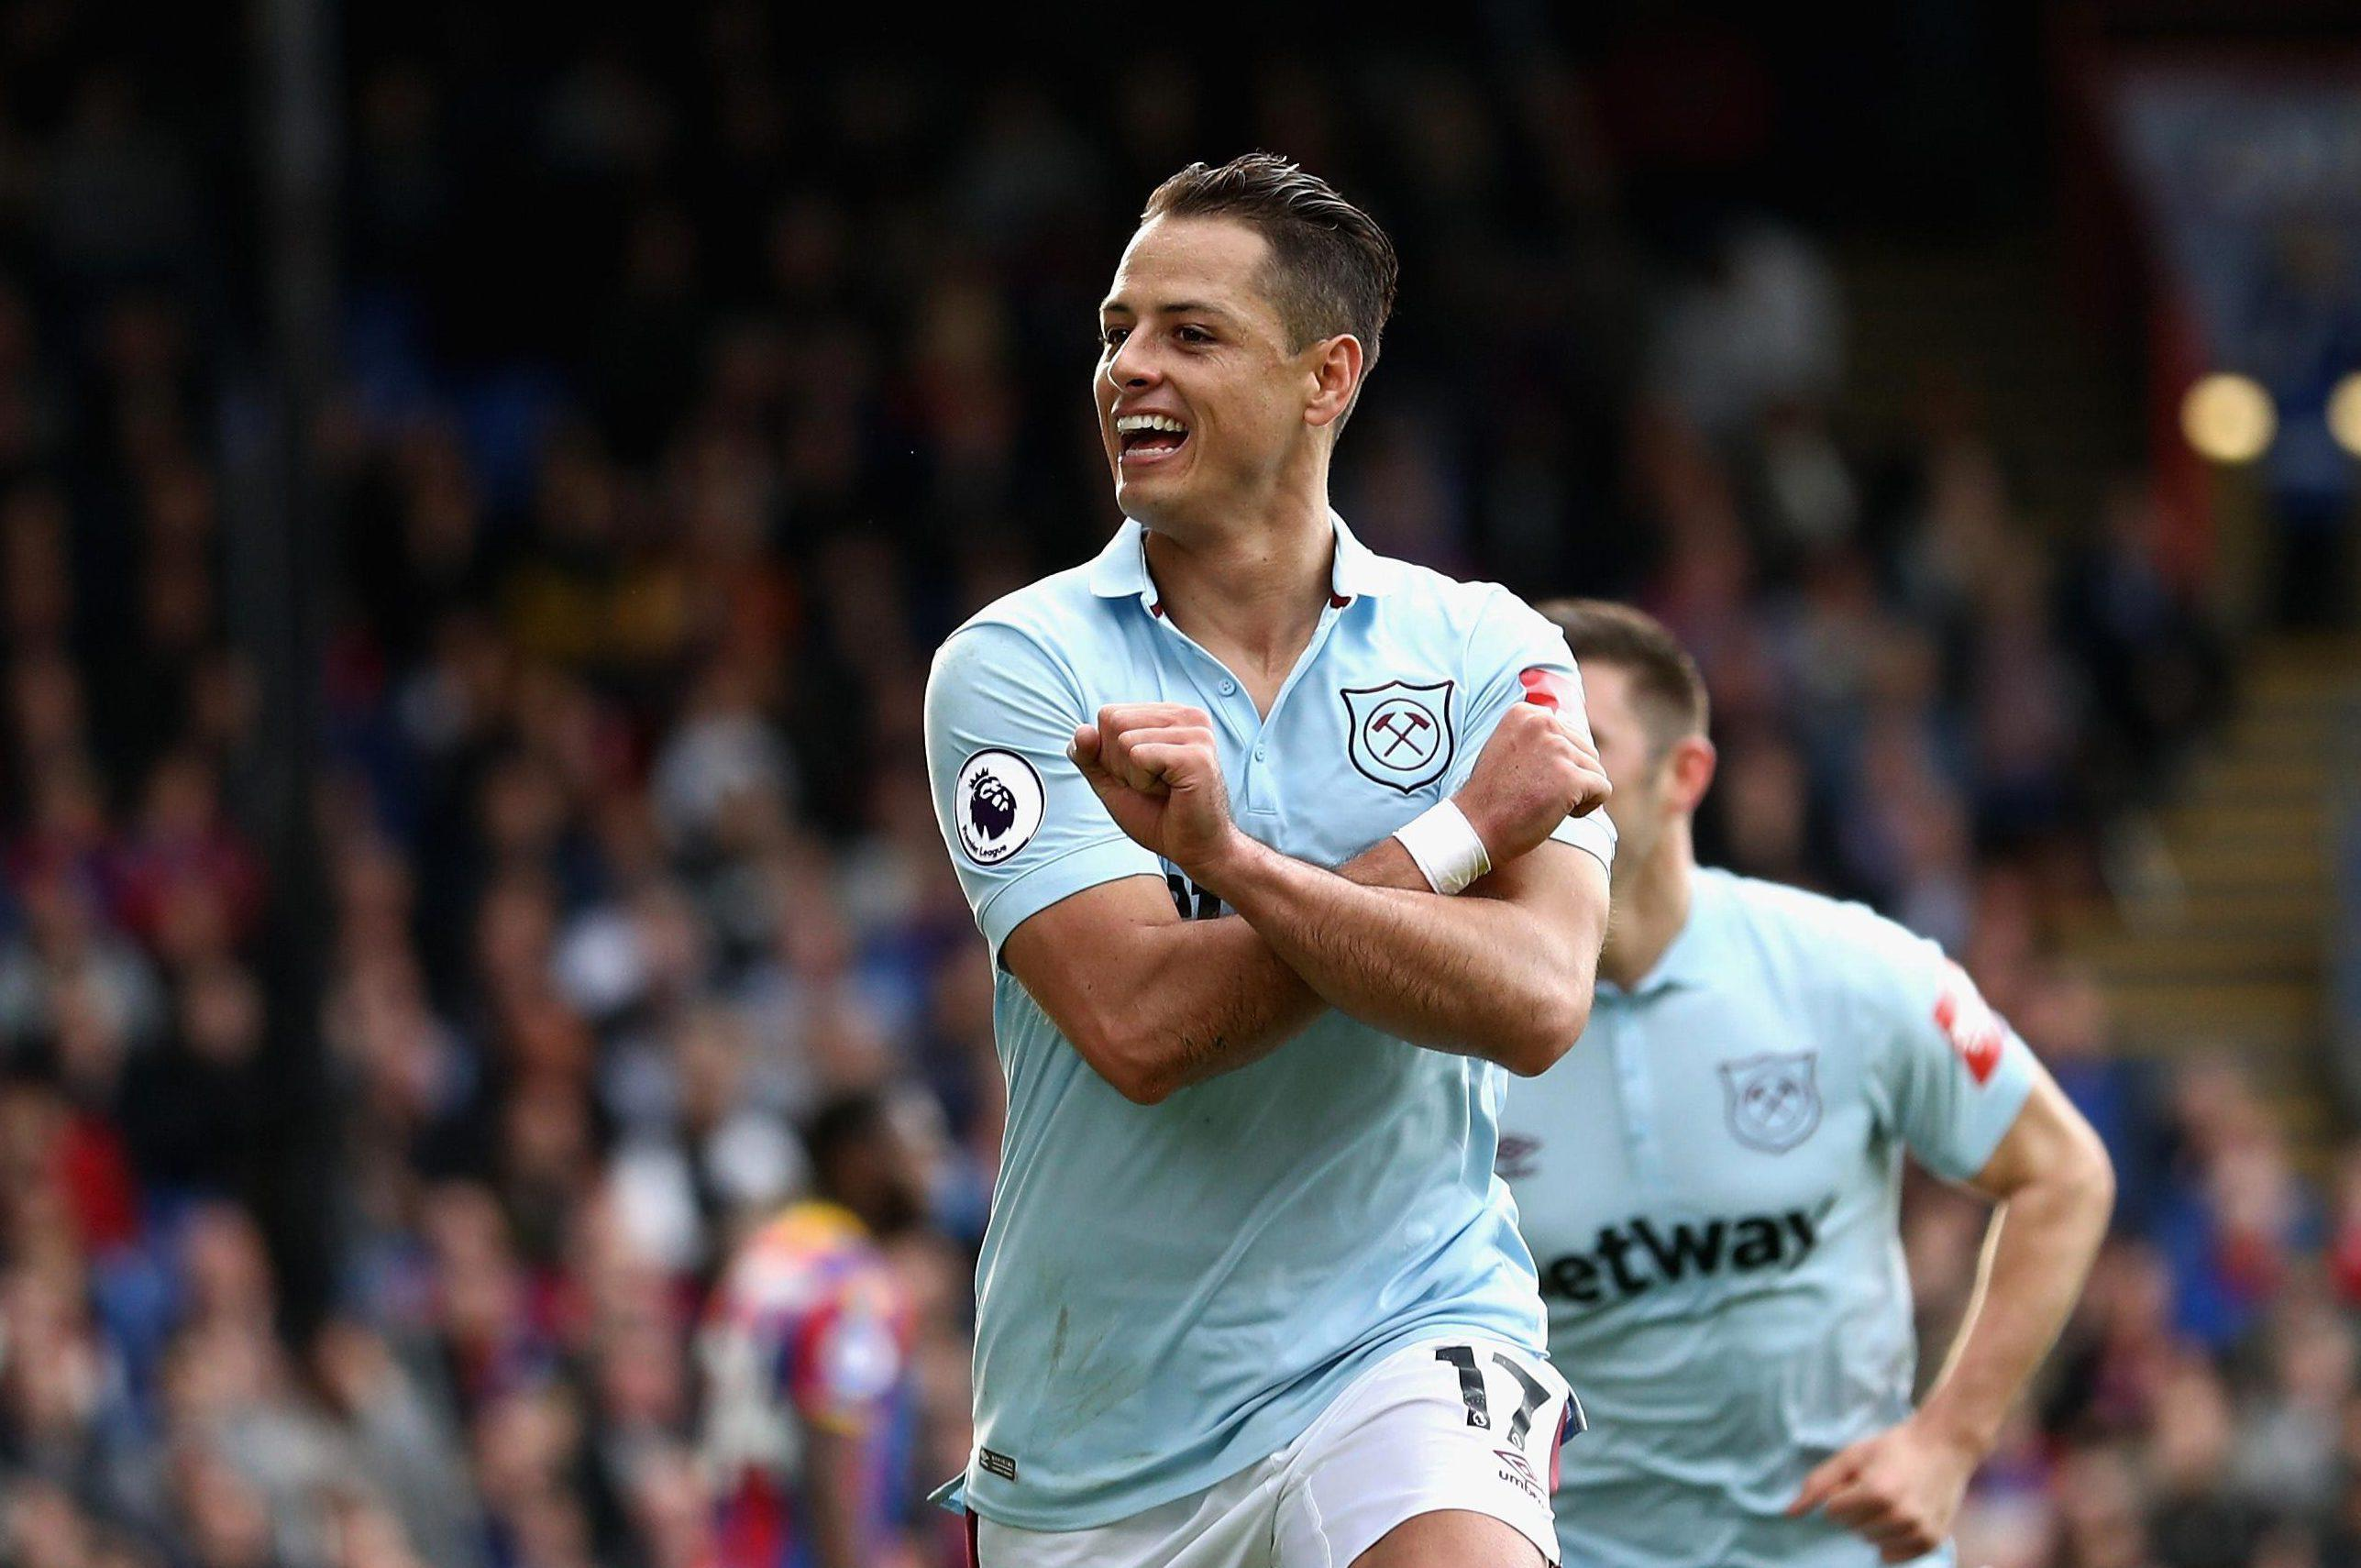 Hernandez's form will be crucial going forward